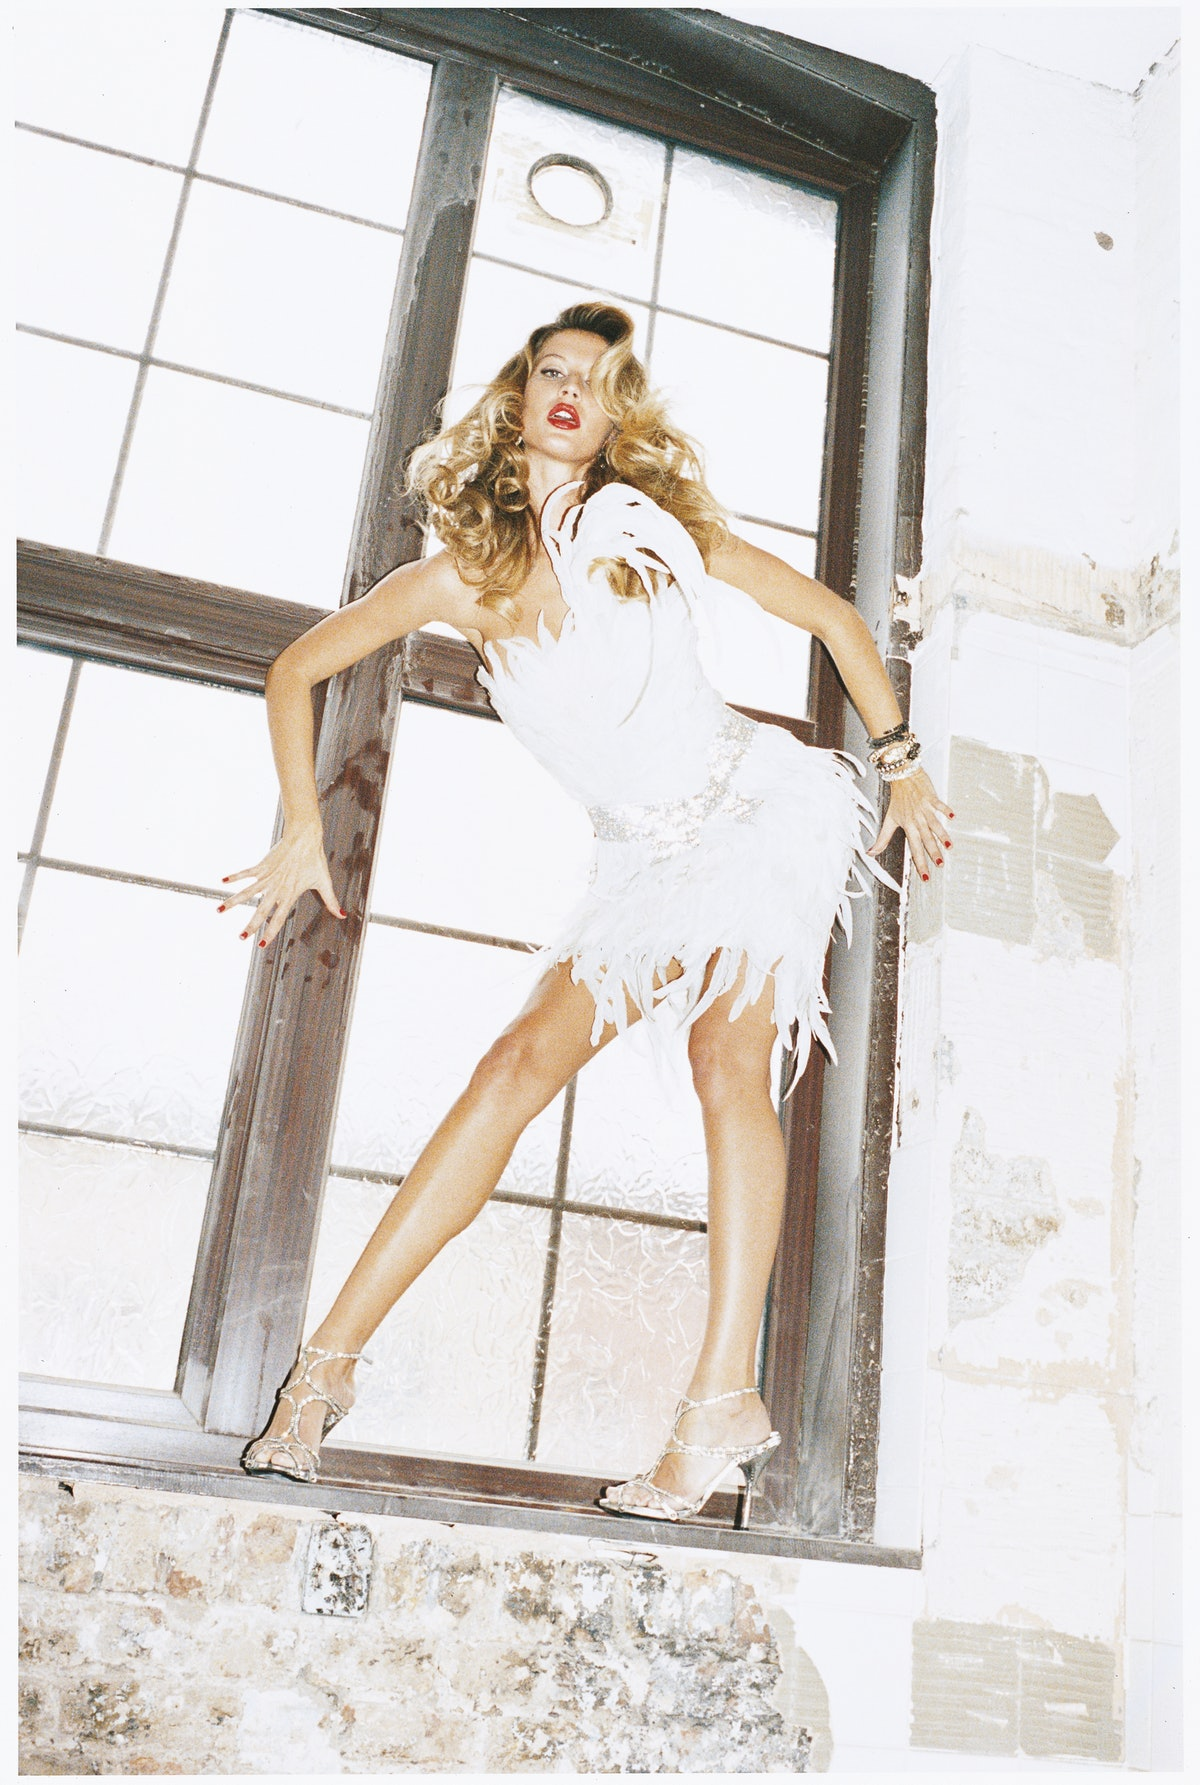 """In """"Hothouse Flower,"""" page 138, Juergen Teller captures Gisele Bündchen in the season's frothiest fa..."""